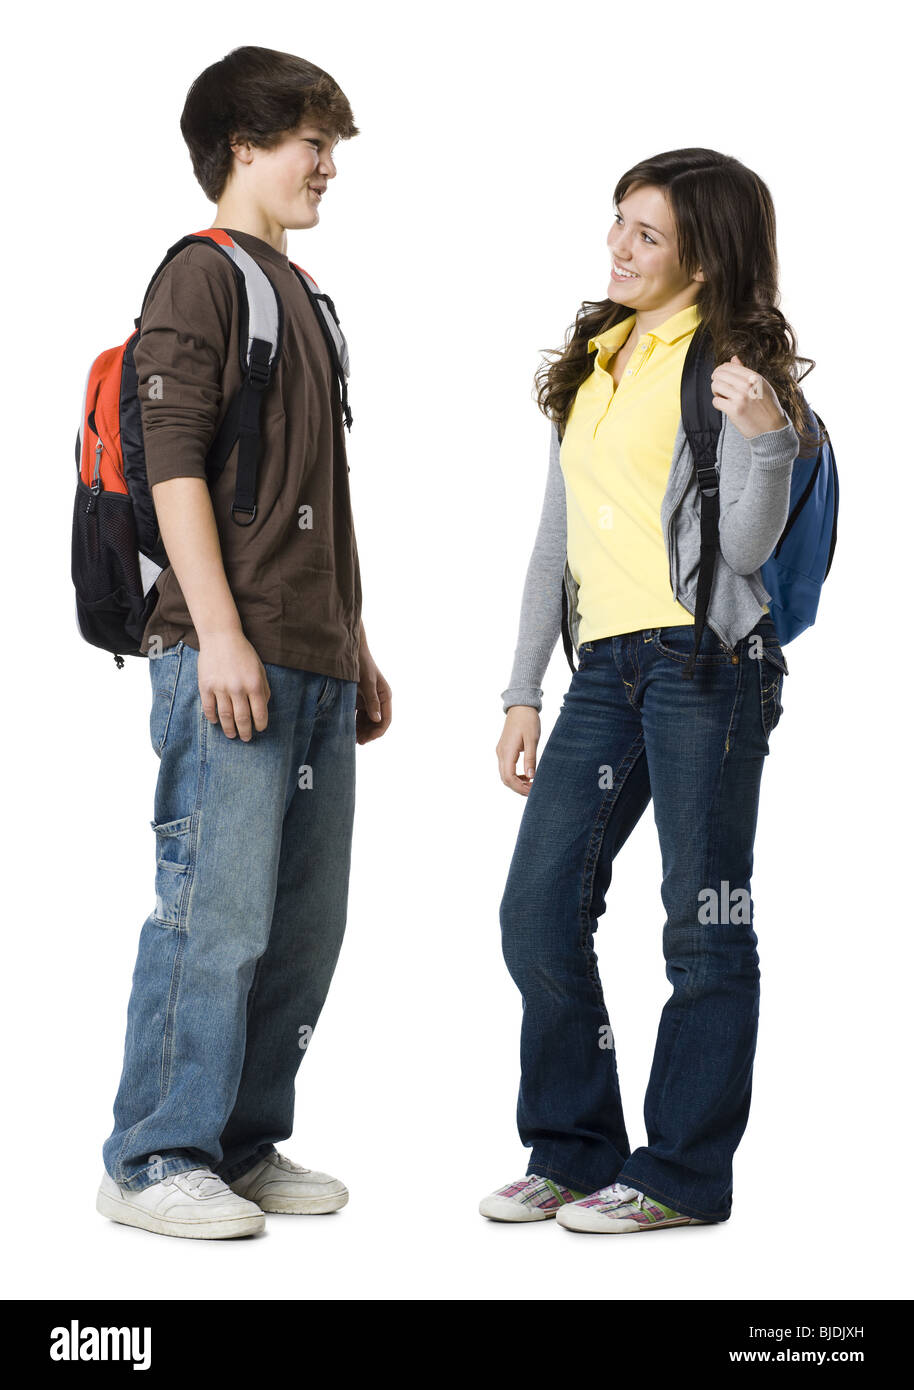 Students with book bags posing - Stock Image